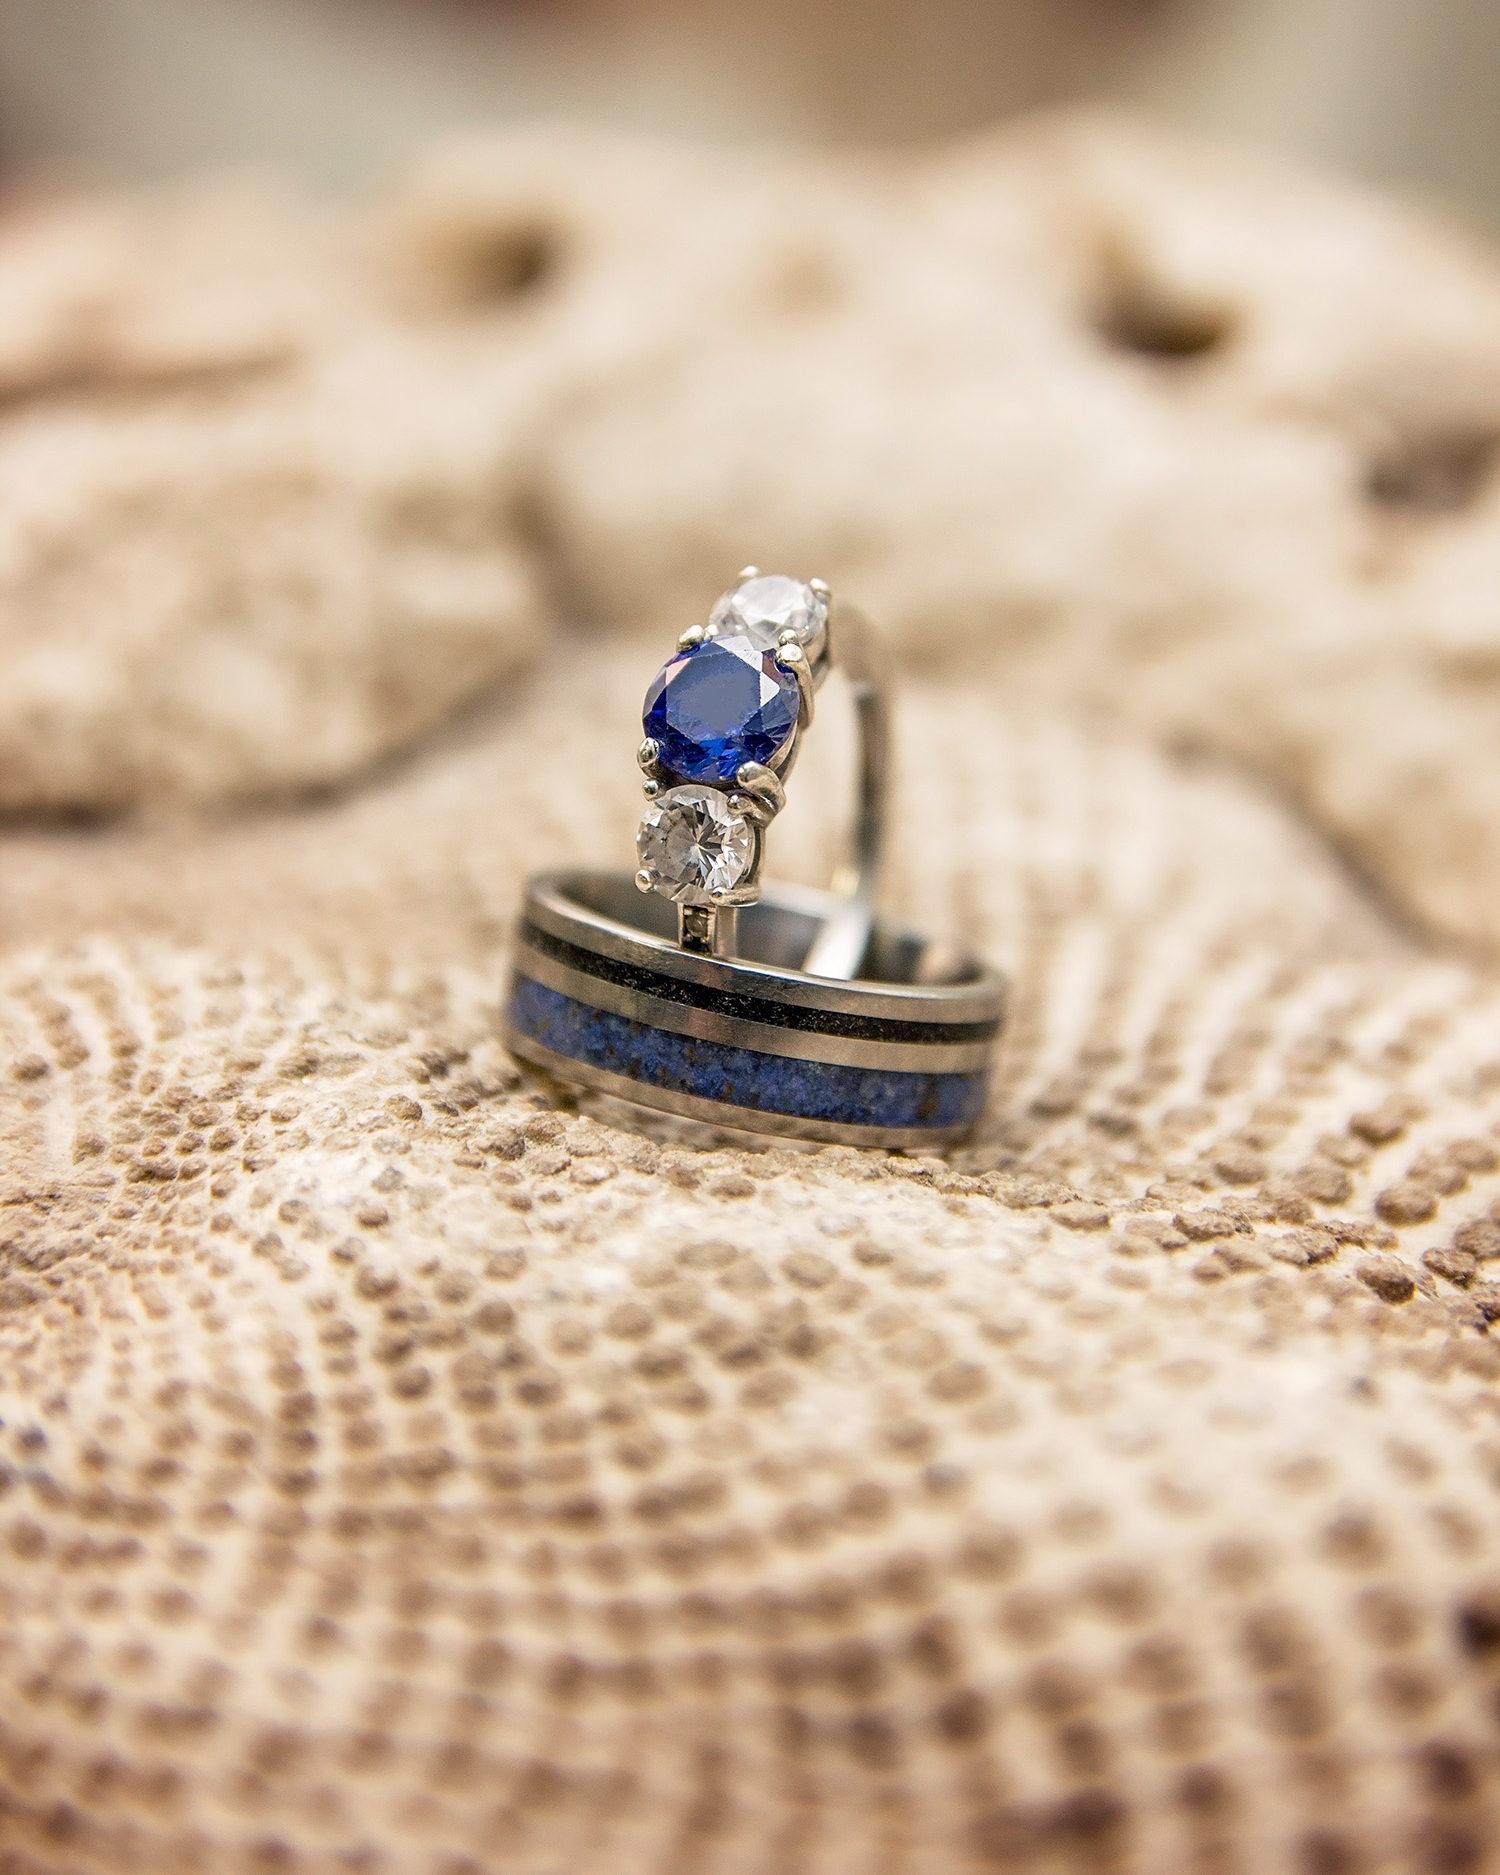 Fossil makes a great texture for displaying wedding rings - image captured during science-themed wedding at Missouri Institute of Natural Science, Springfield, Missouri